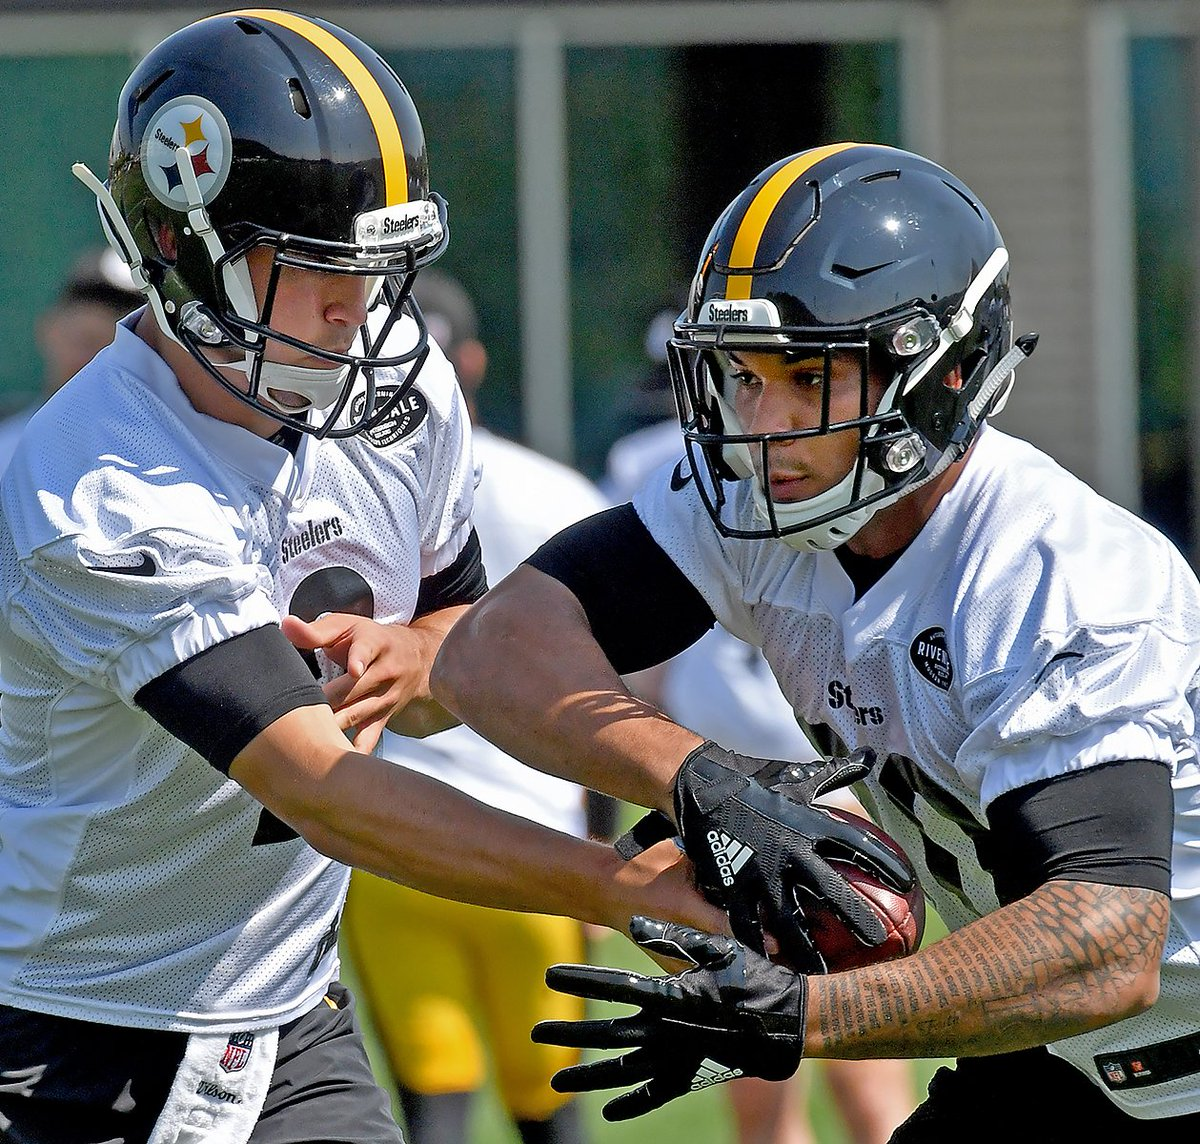 fc102ef3d0c ... Mason Rudolph hands off to running back James Conner during OTAs  Thursday at UPMC Rooney Sports Complex.pic.twitter.com z0P51kbPGN. 9 29 AM  - 24 May ...